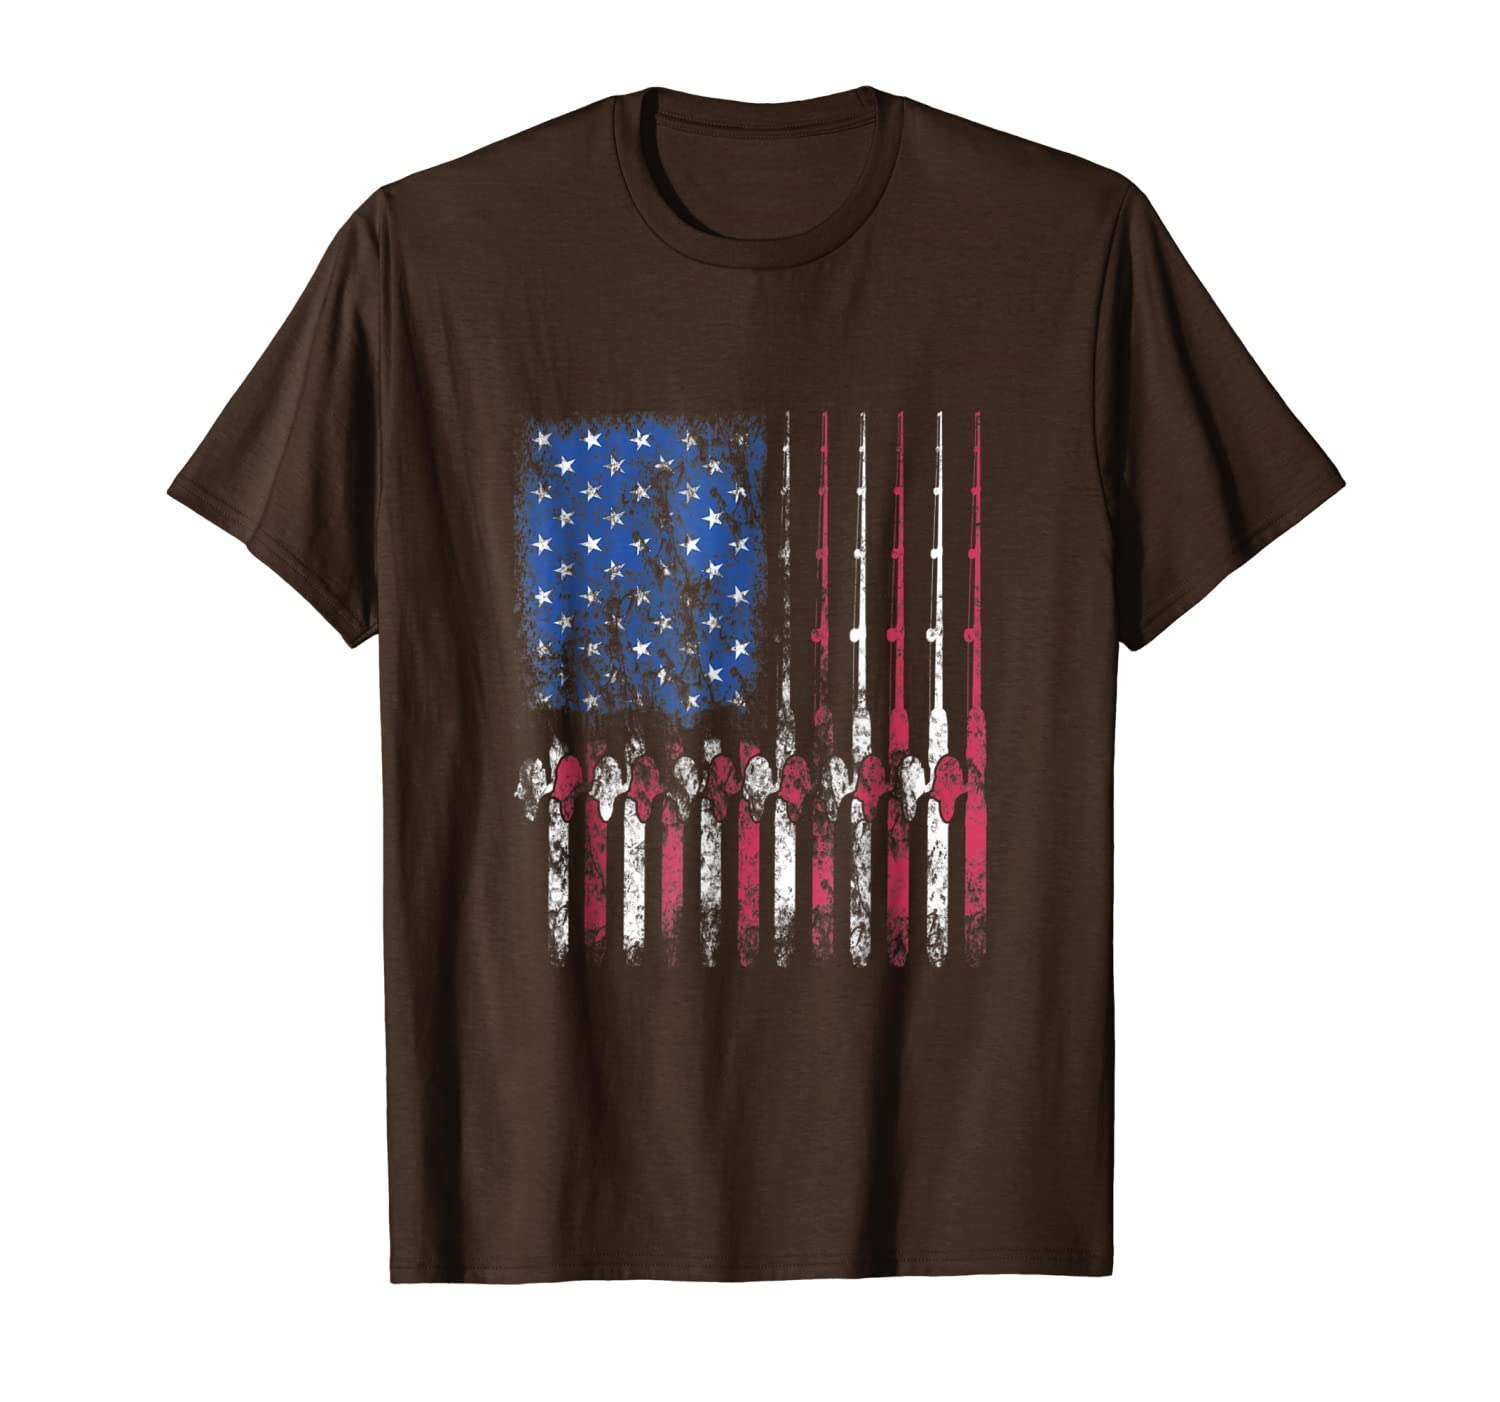 Fishing America T-Shirt American Flag Fisherman Fish Gift Unisex Tshirt